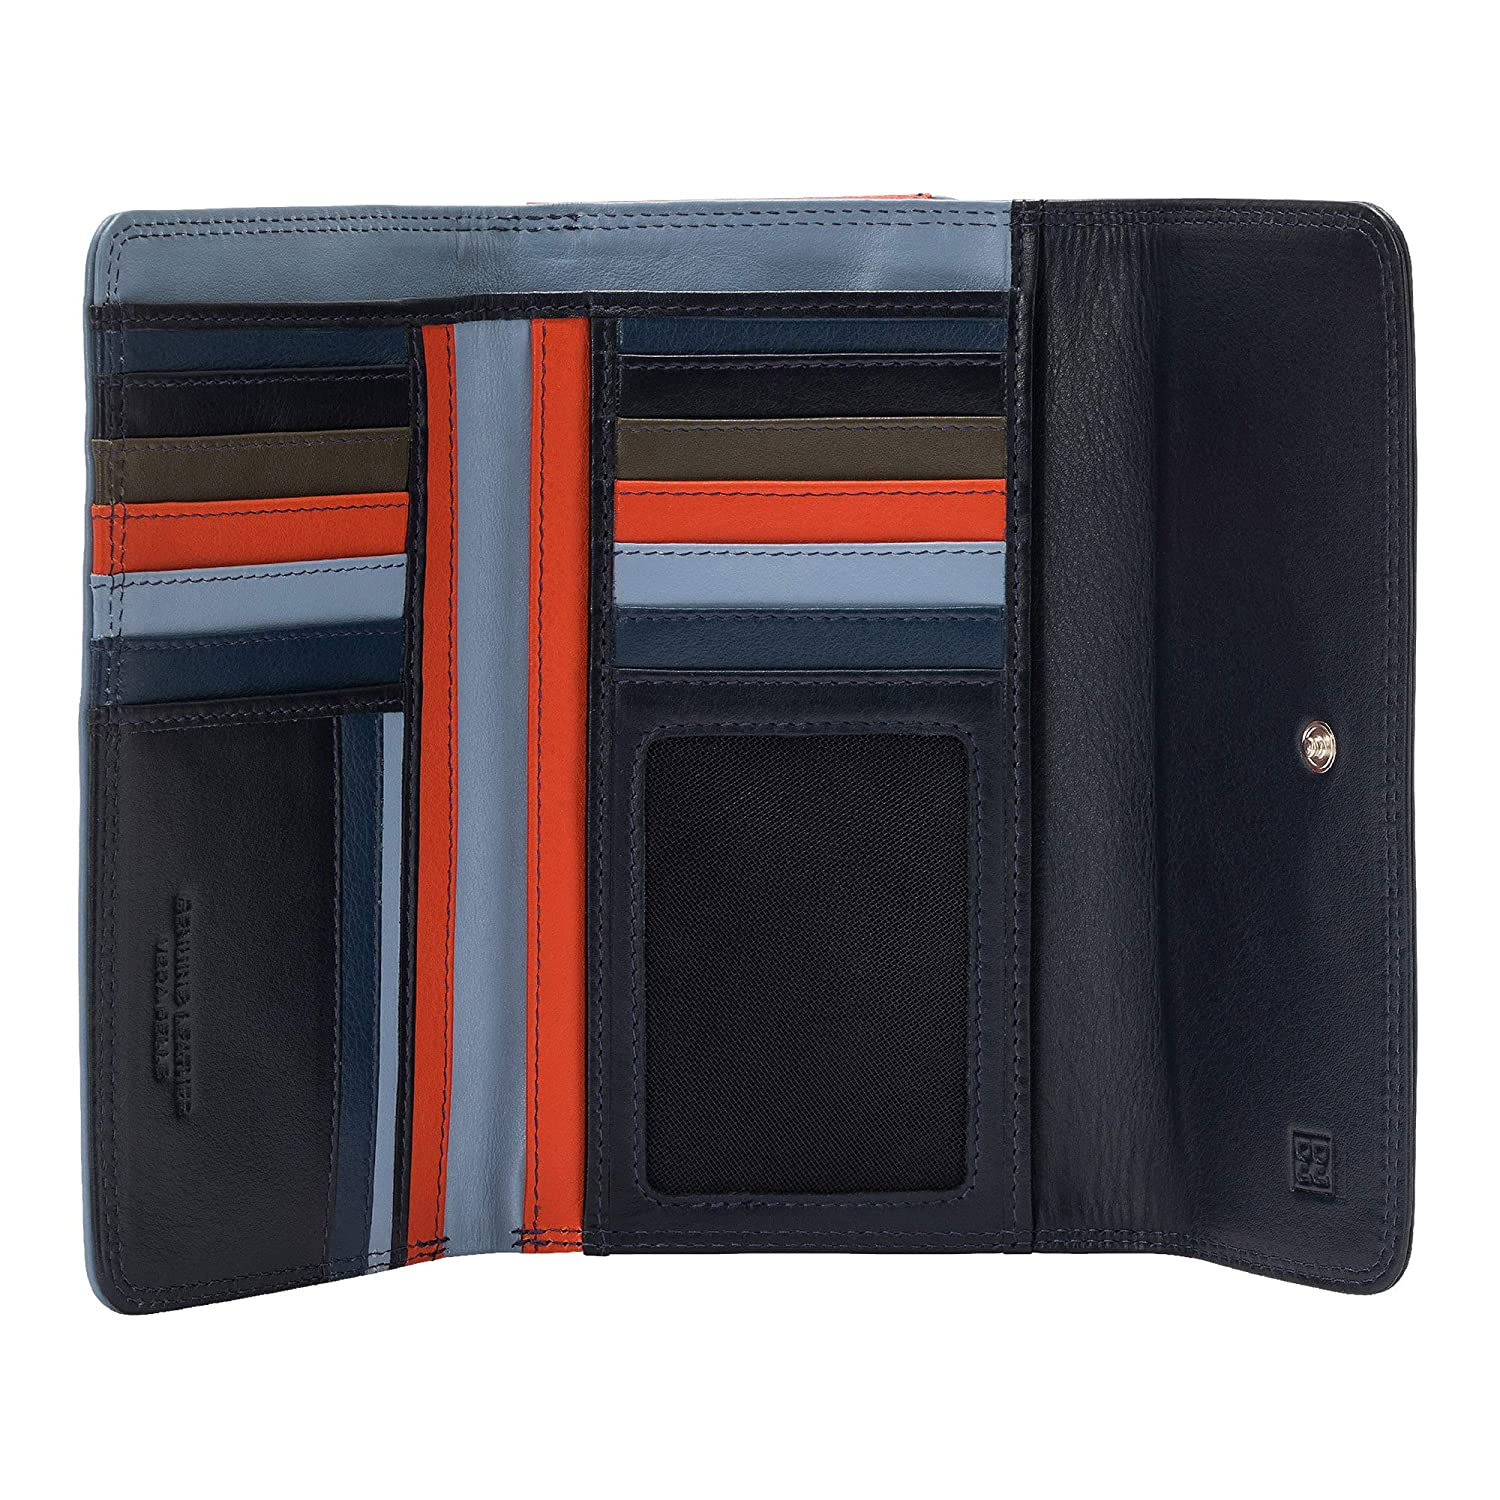 Soft Leather MultiColour Woman's Wallet by DUDU Navy